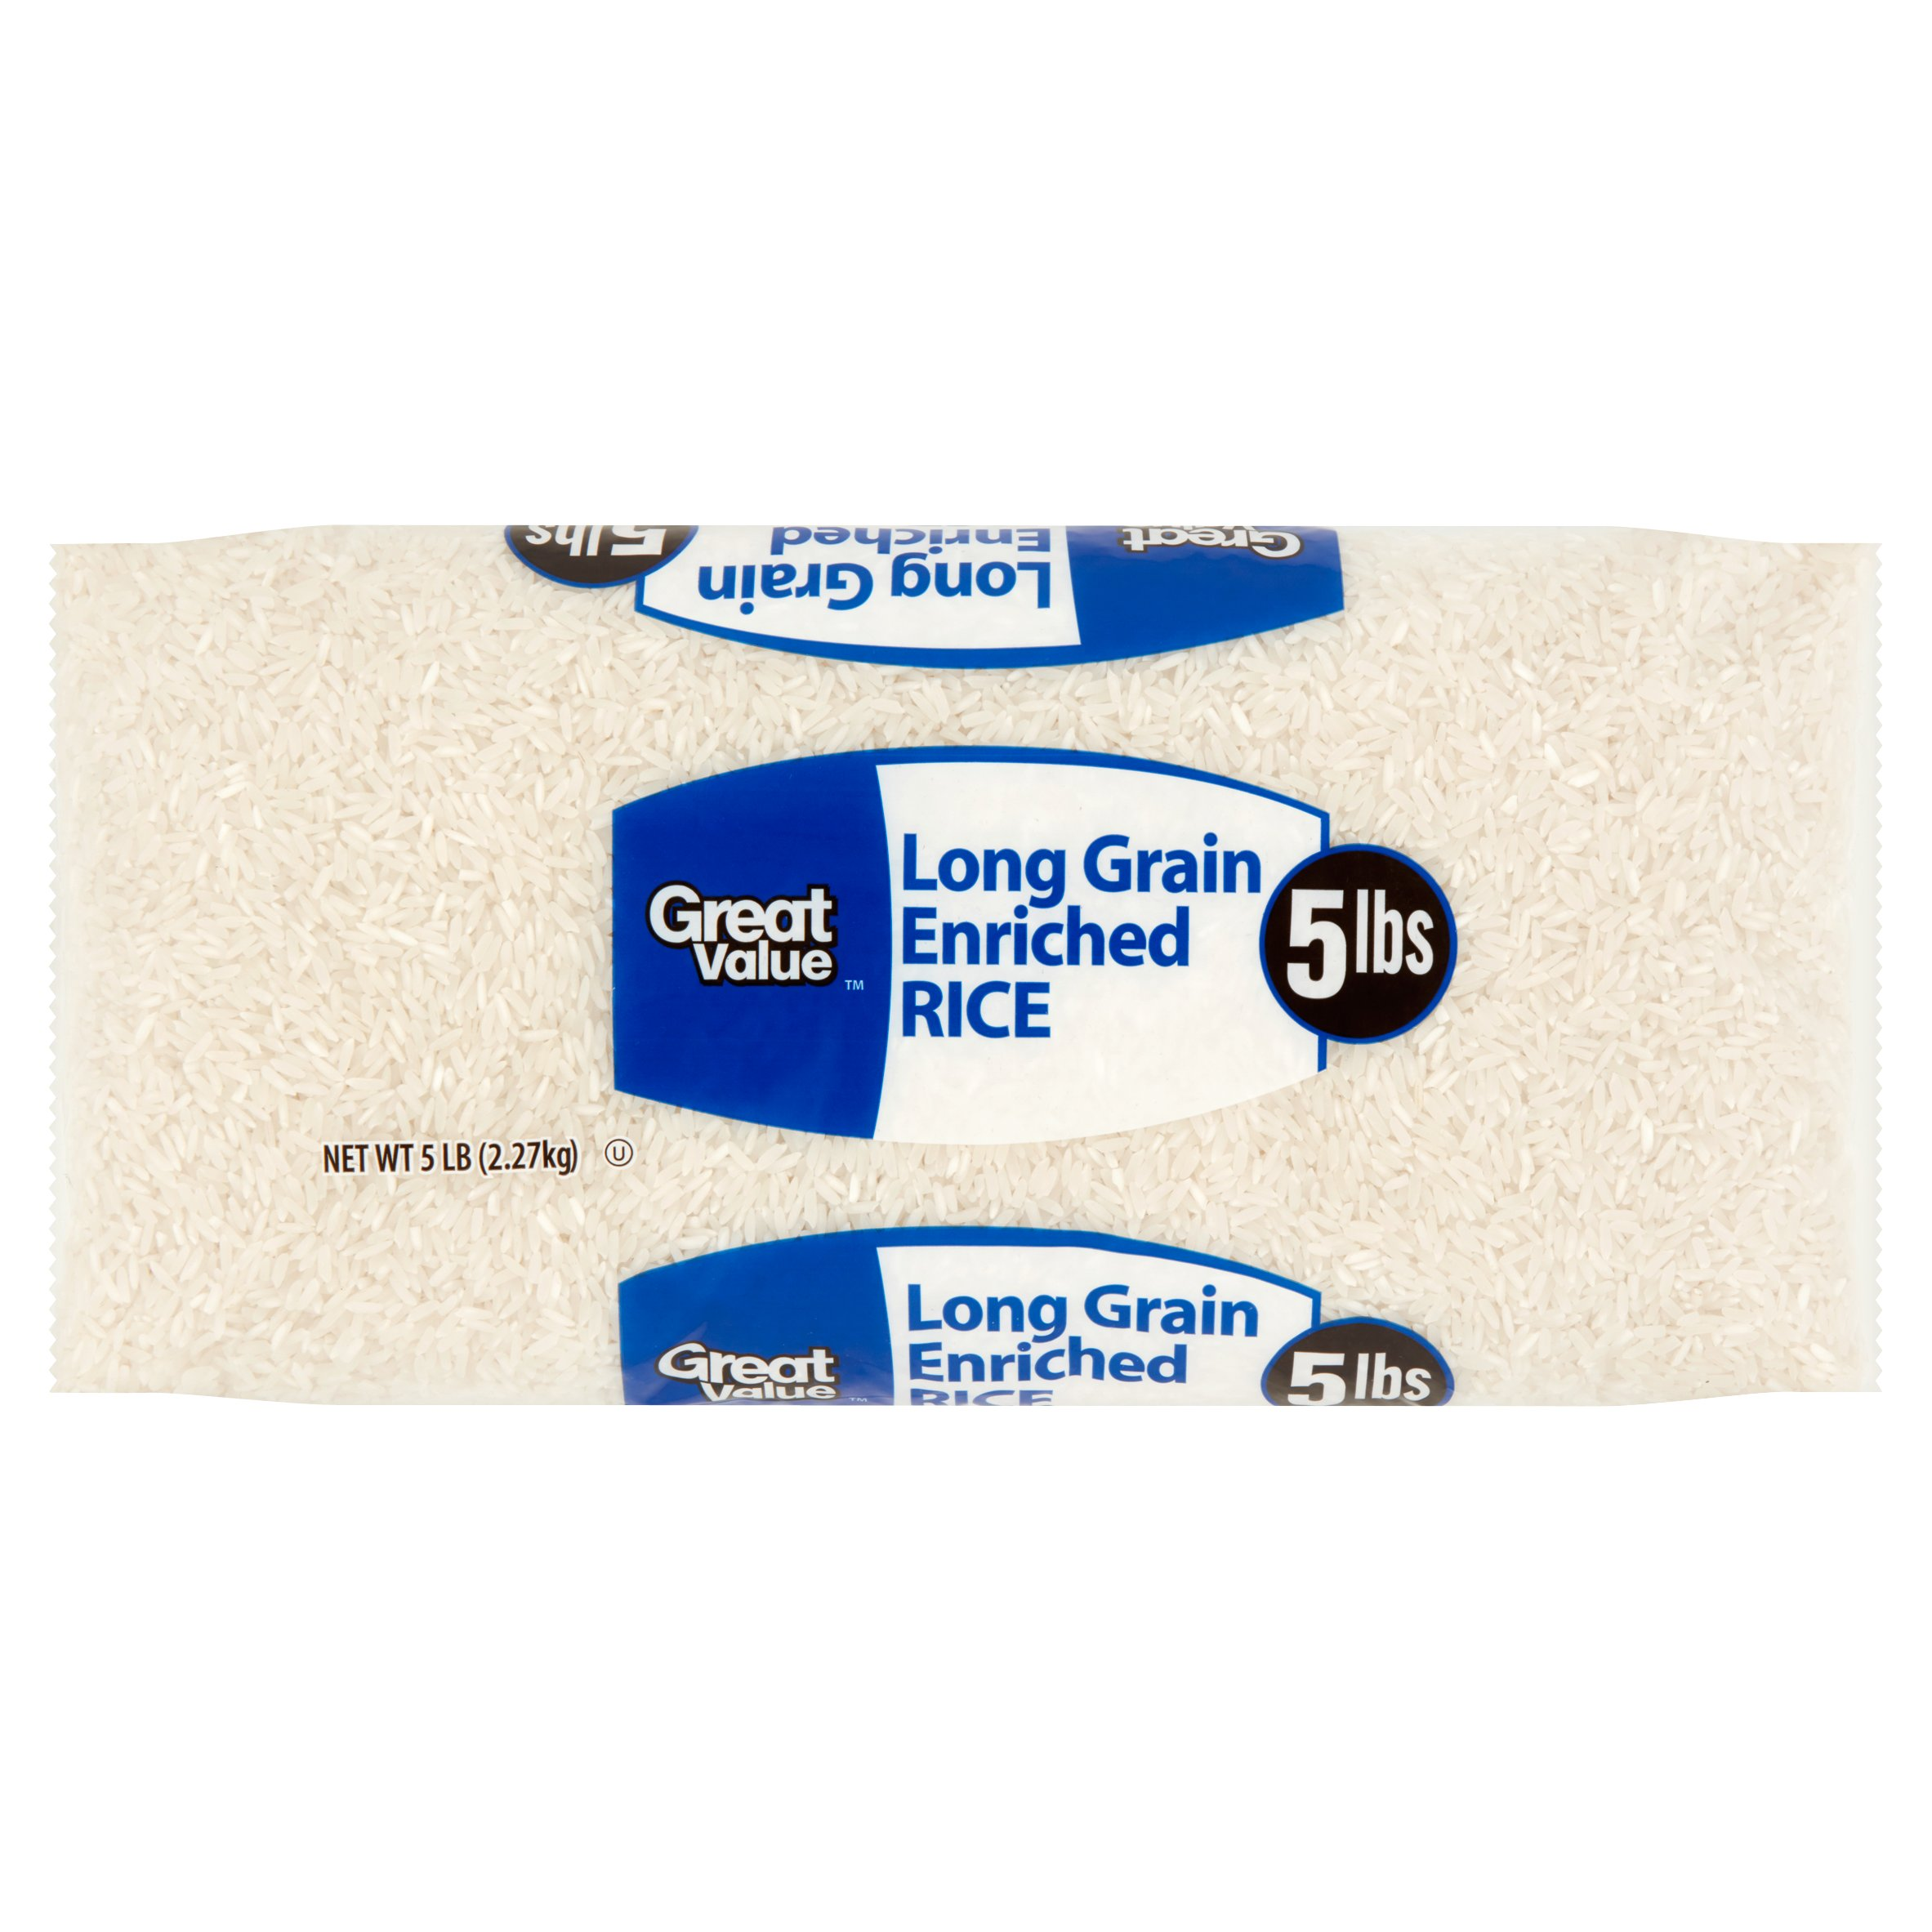 Great Value Long Grain Enriched Rice, 5 Lb